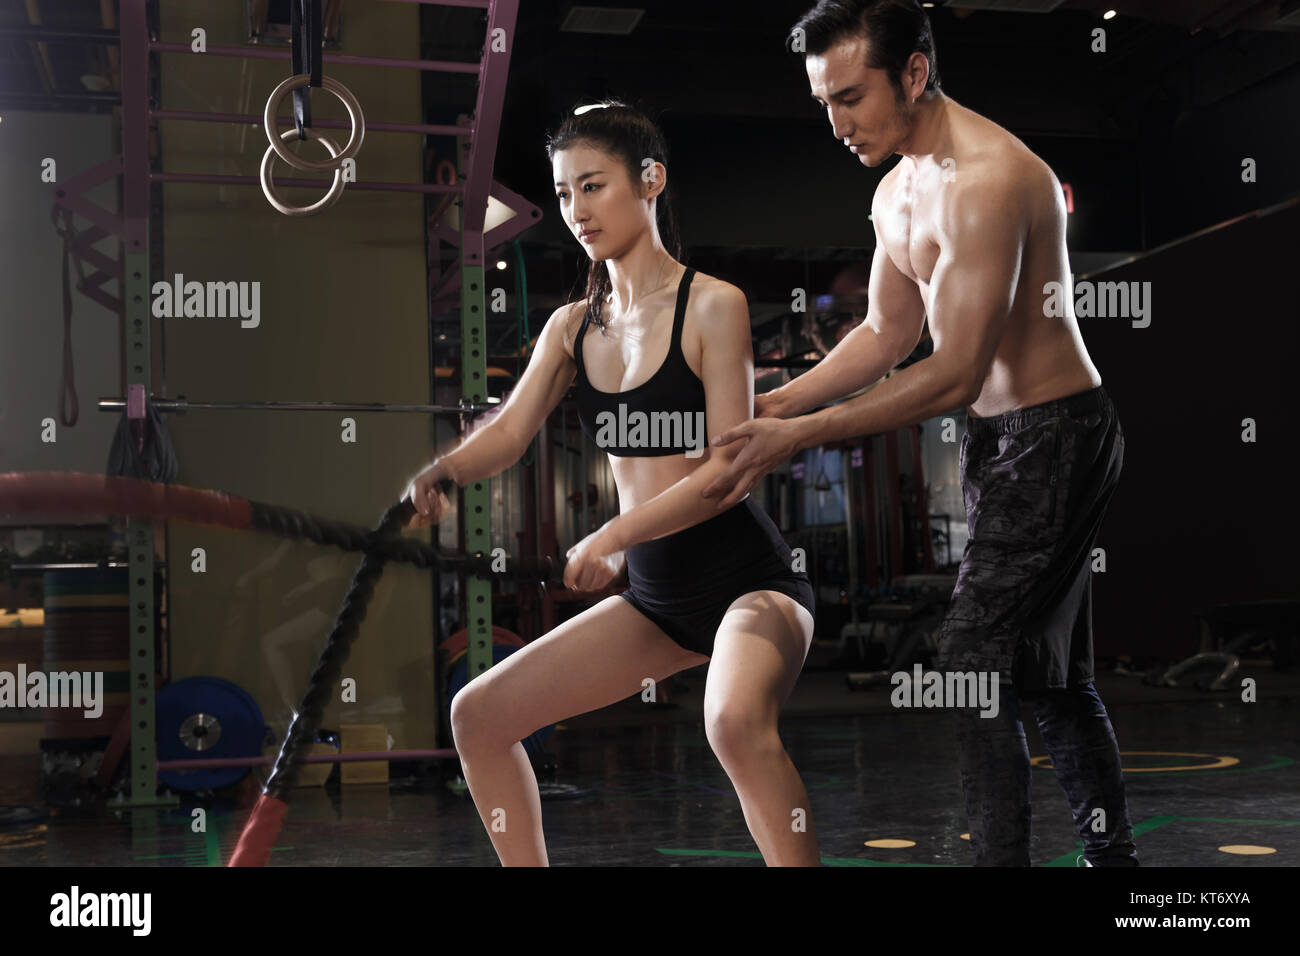 Coaches guide young women's fitness - Stock Image